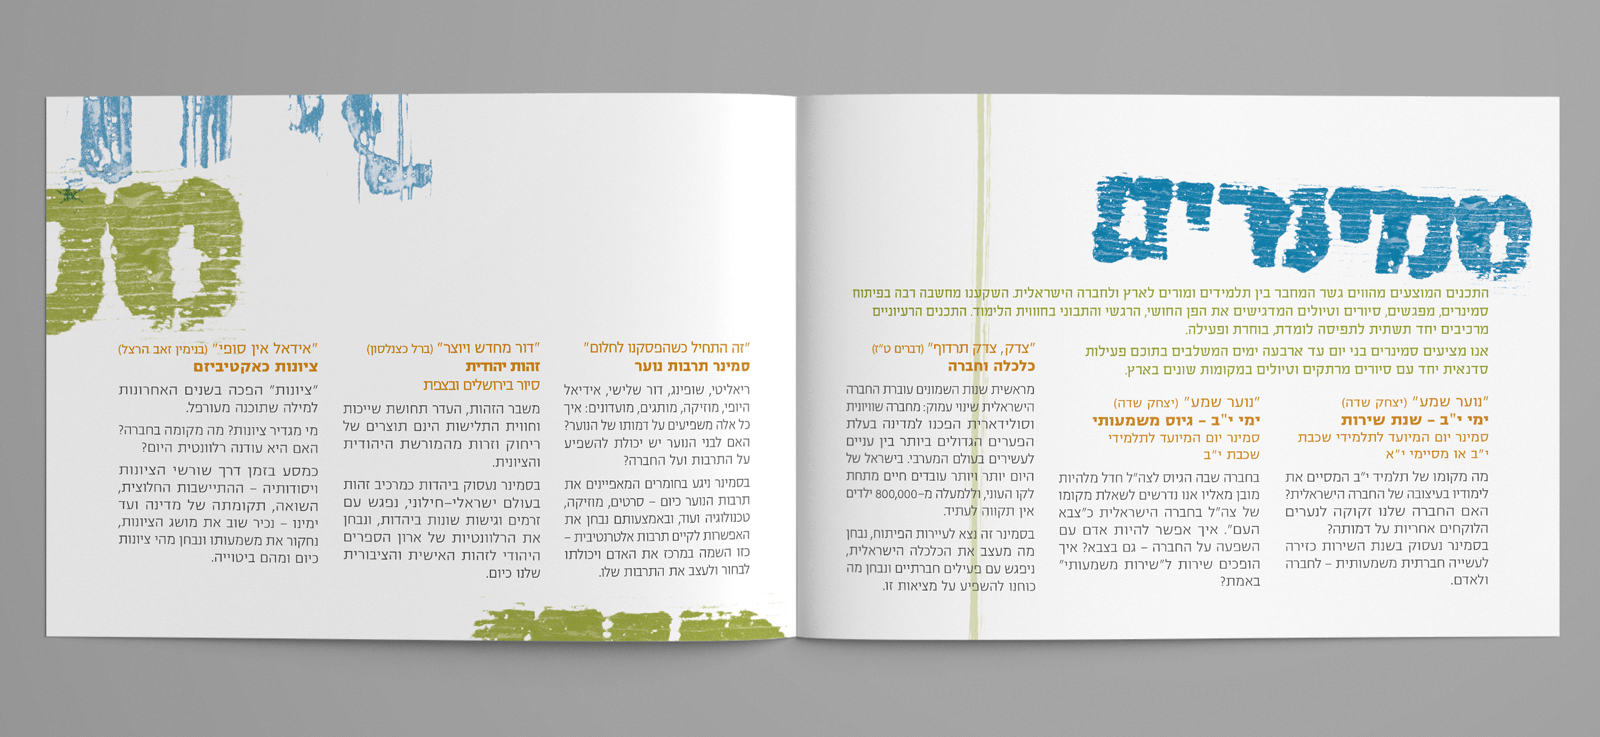 https://bigeyes.co.il/wp-content/uploads/2019/06/derech-2009-2.png